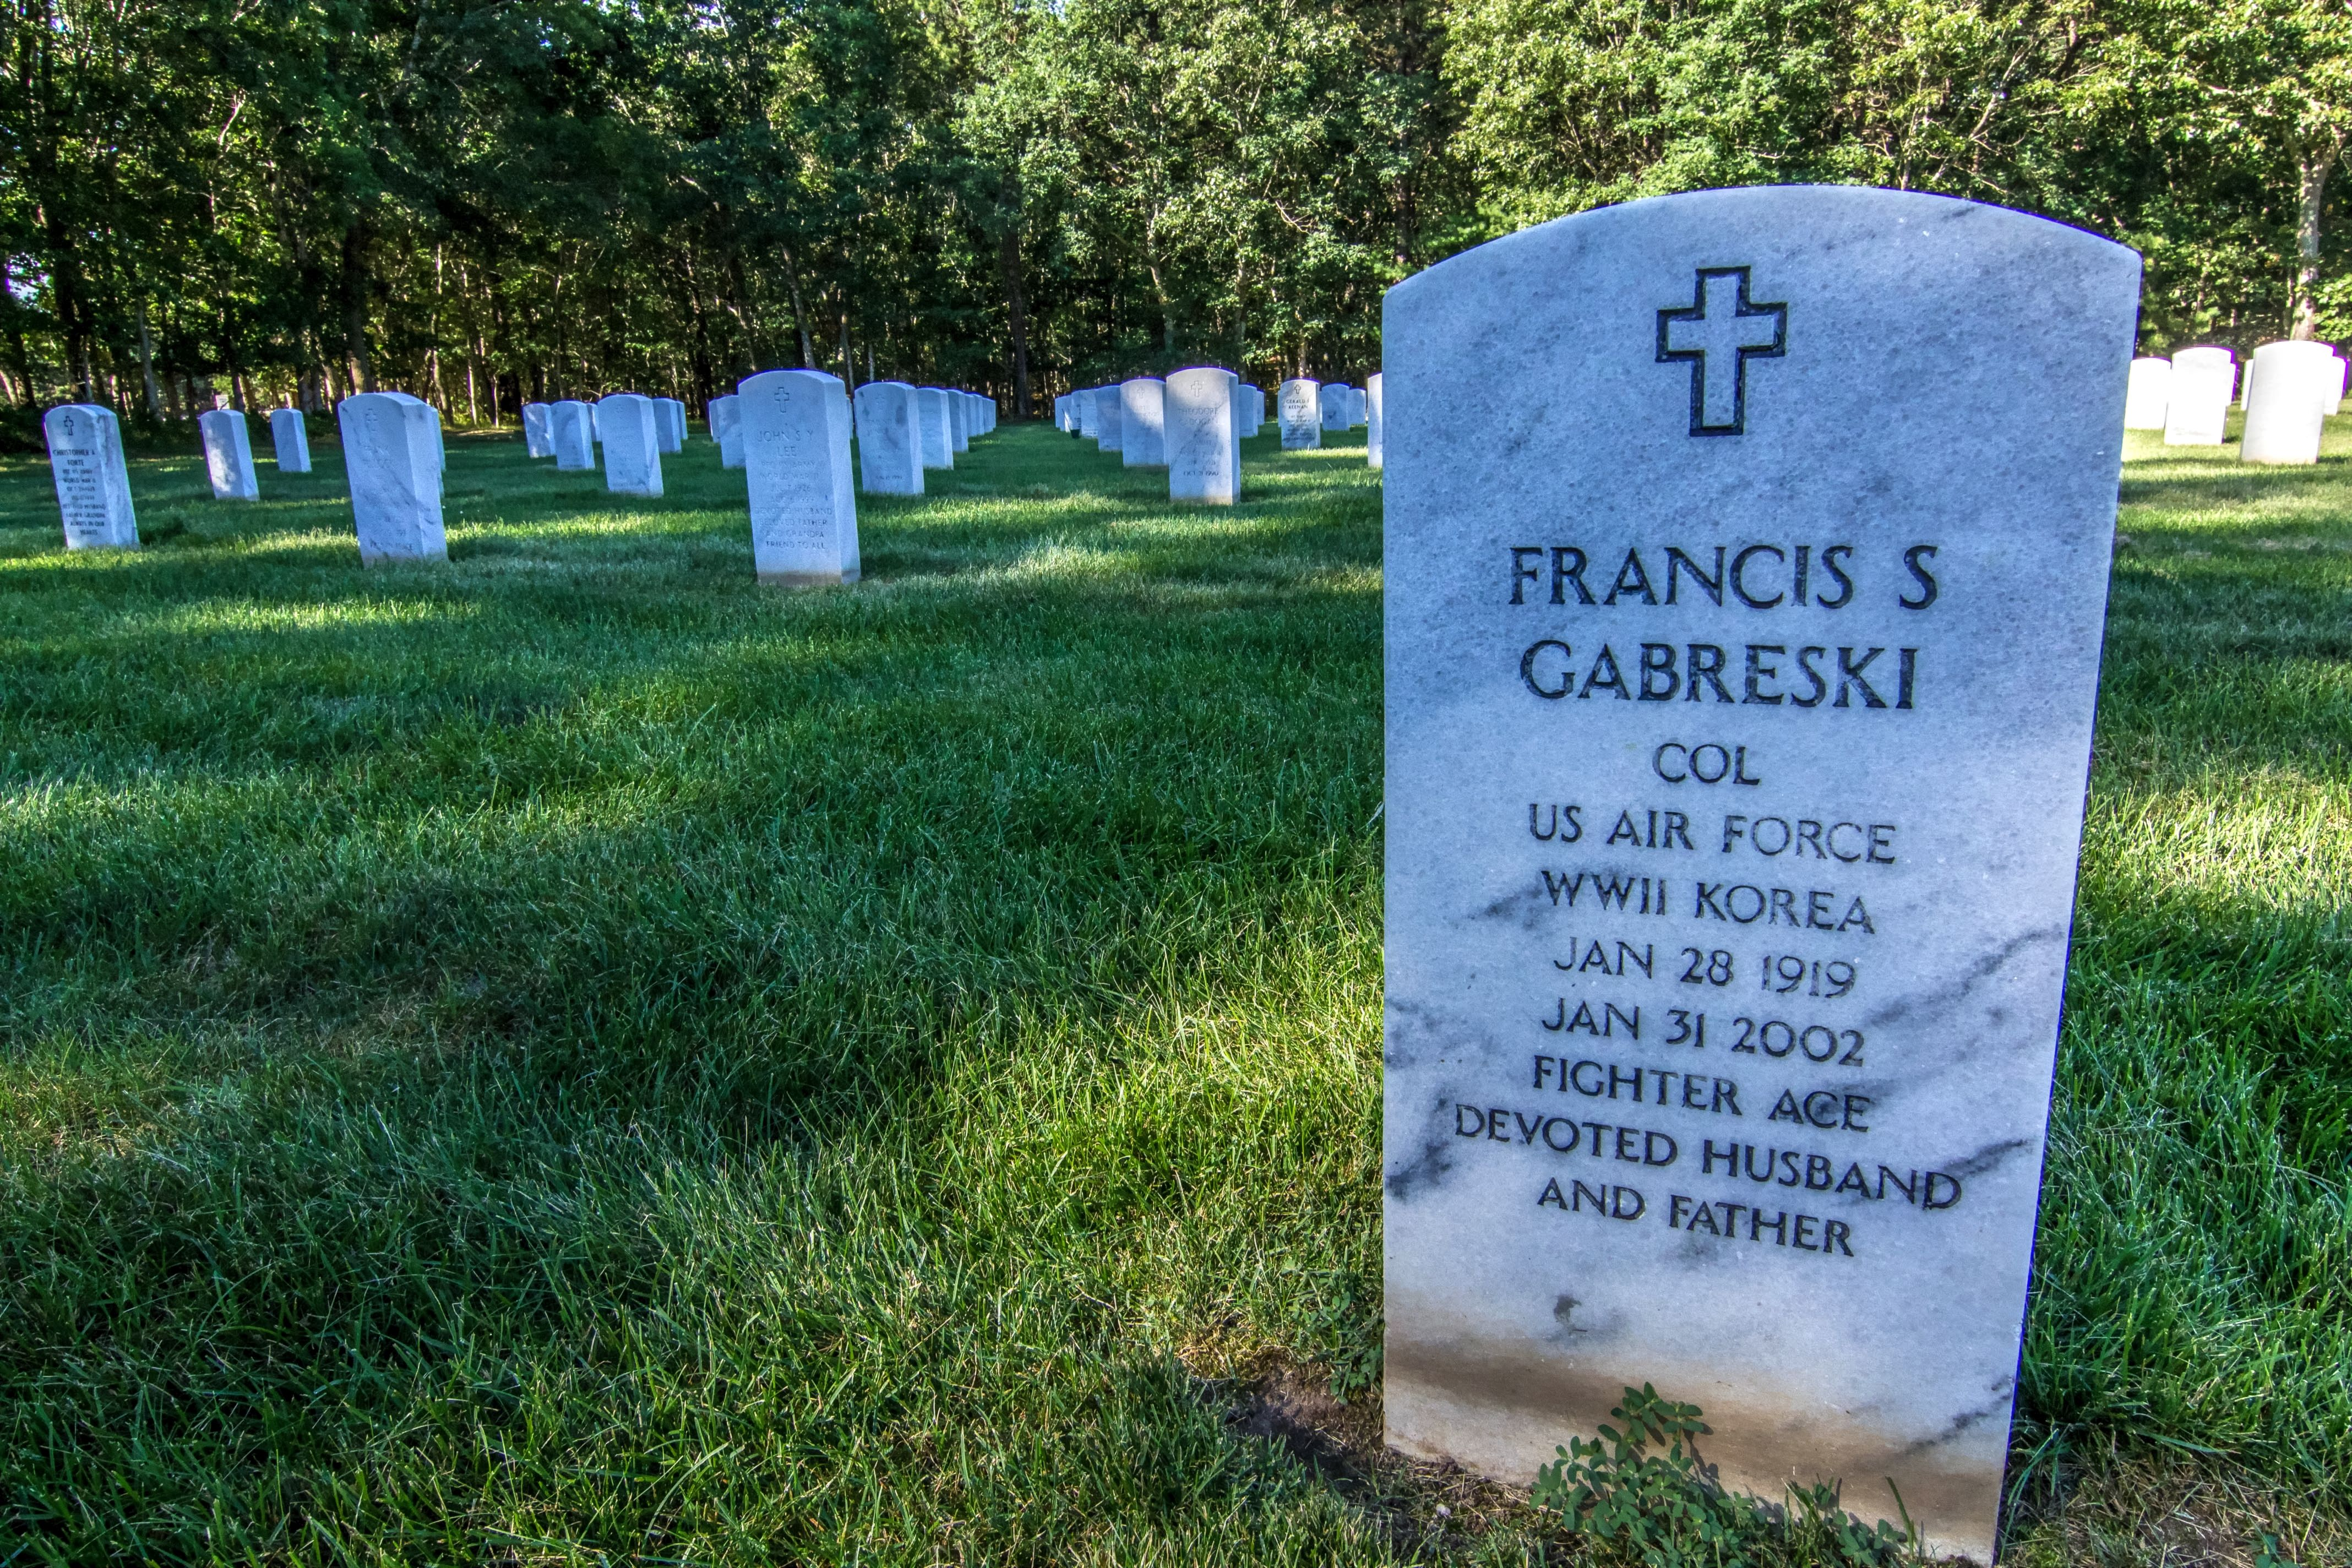 Colonel Francis Gabreski, was the top Air Force ACE in World War II and the Korean War.  Buried in Section 14 (same as my parents) at Calverton National Cemetery, Calverton, NY (07/24/2016)